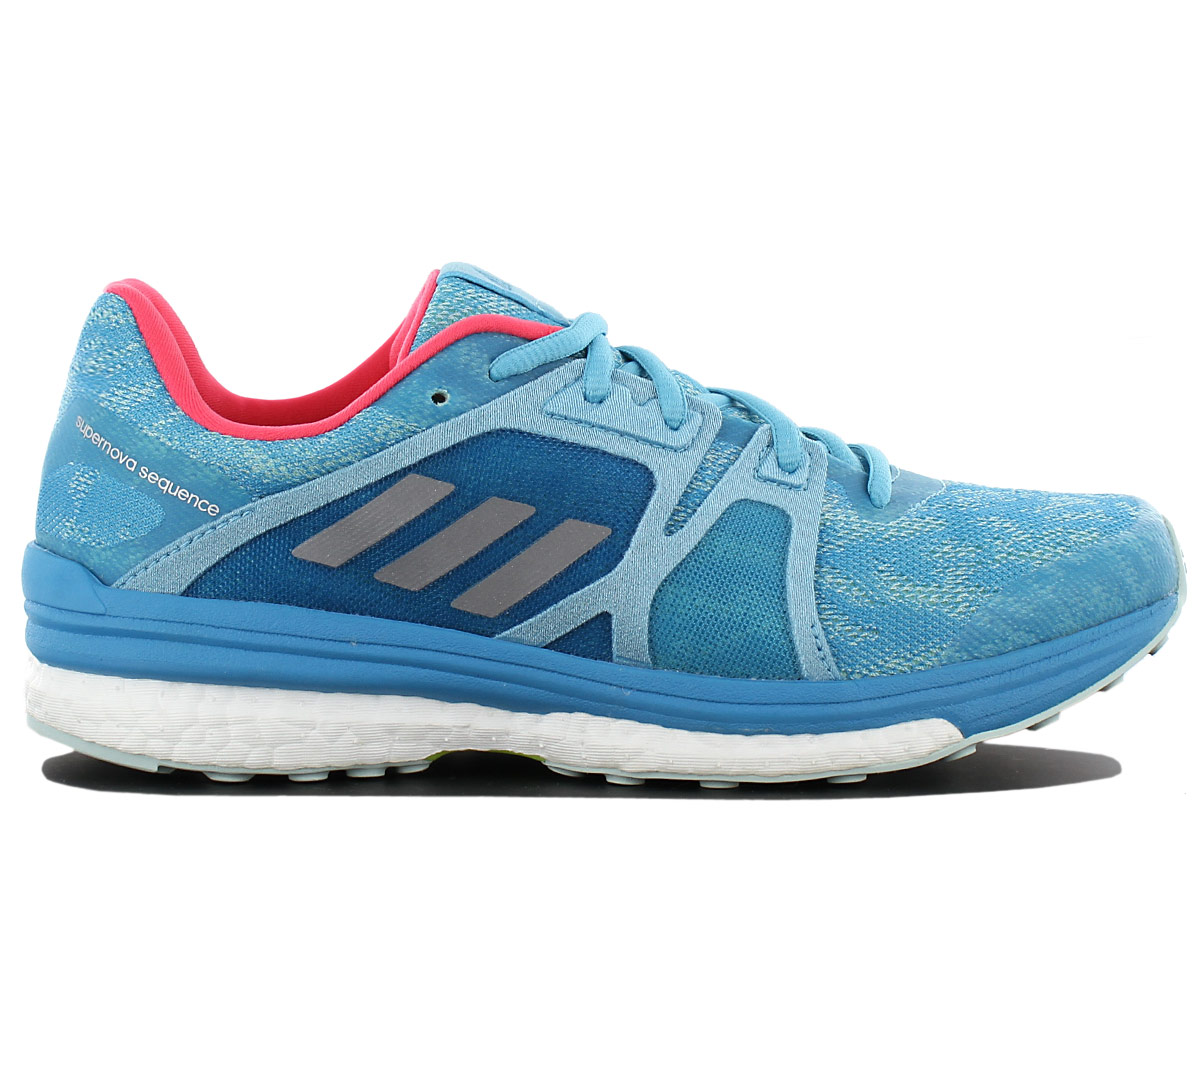 9fa0c374be9dd Adidas Supernova Sequence 9 W Boost Ladies Running Shoes Running ...